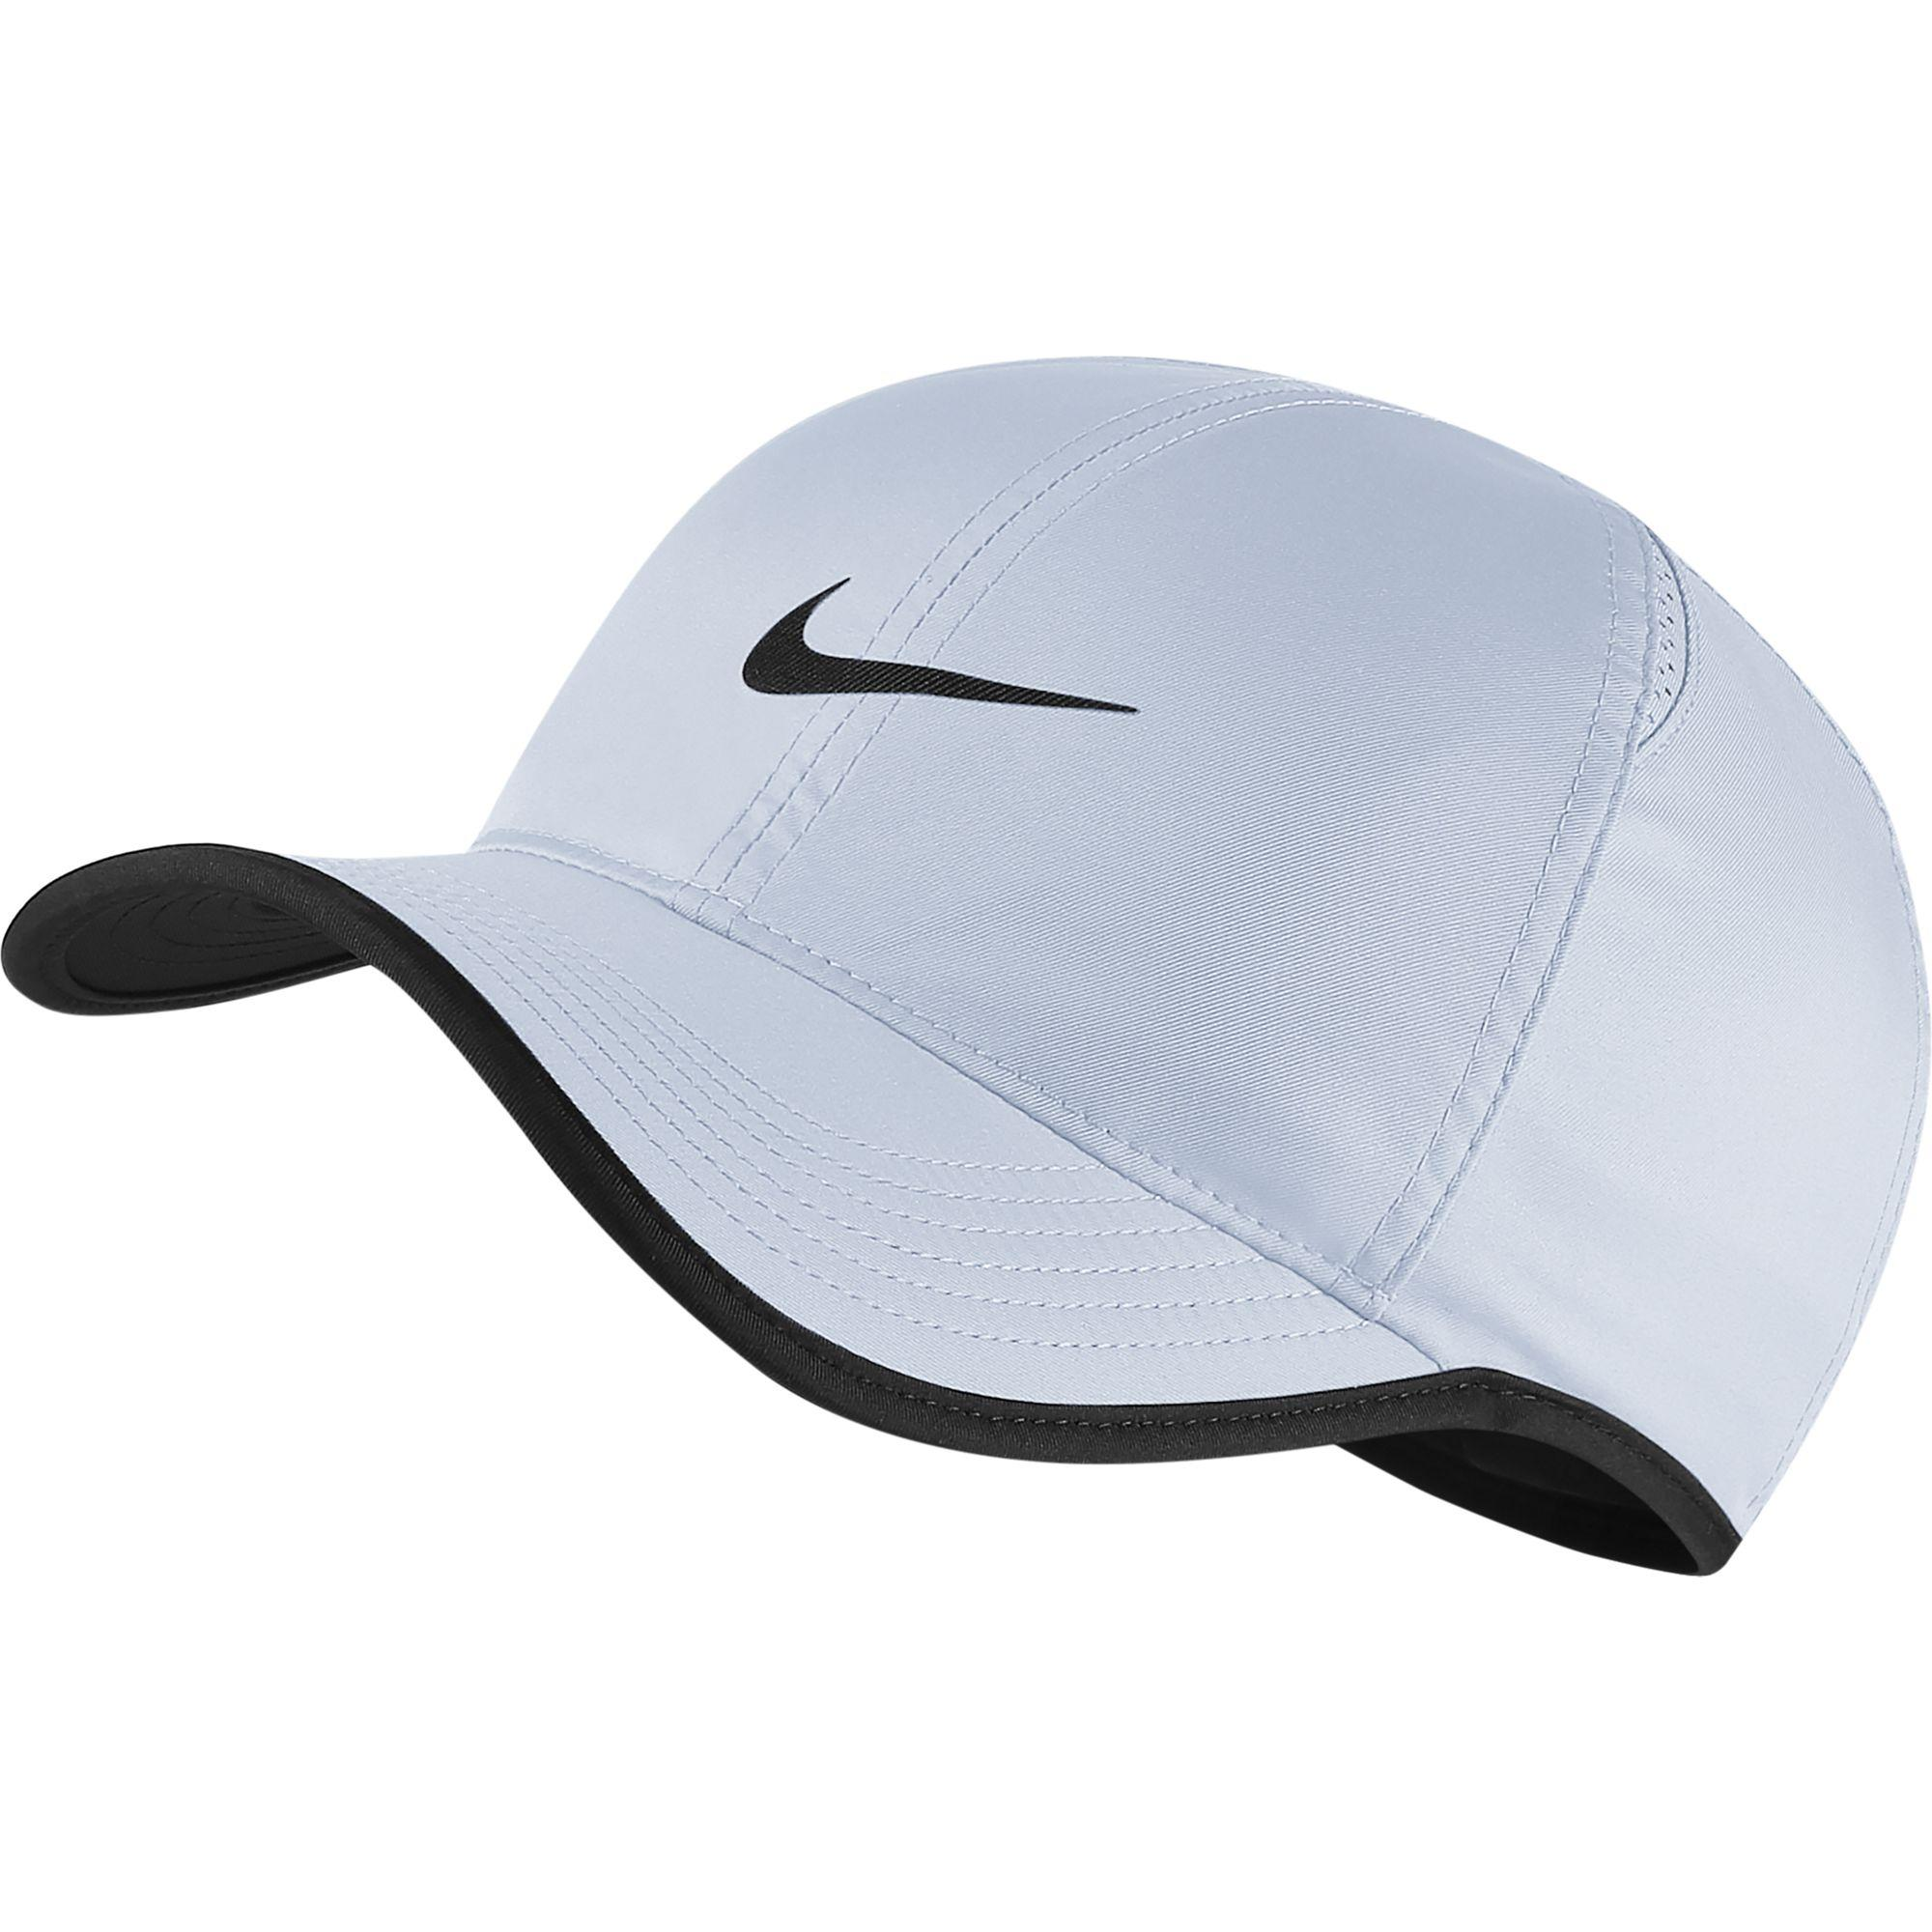 Nike Featherlight Adjustable Cap - Half Blue Black - Tennisnuts.com b20b8079447